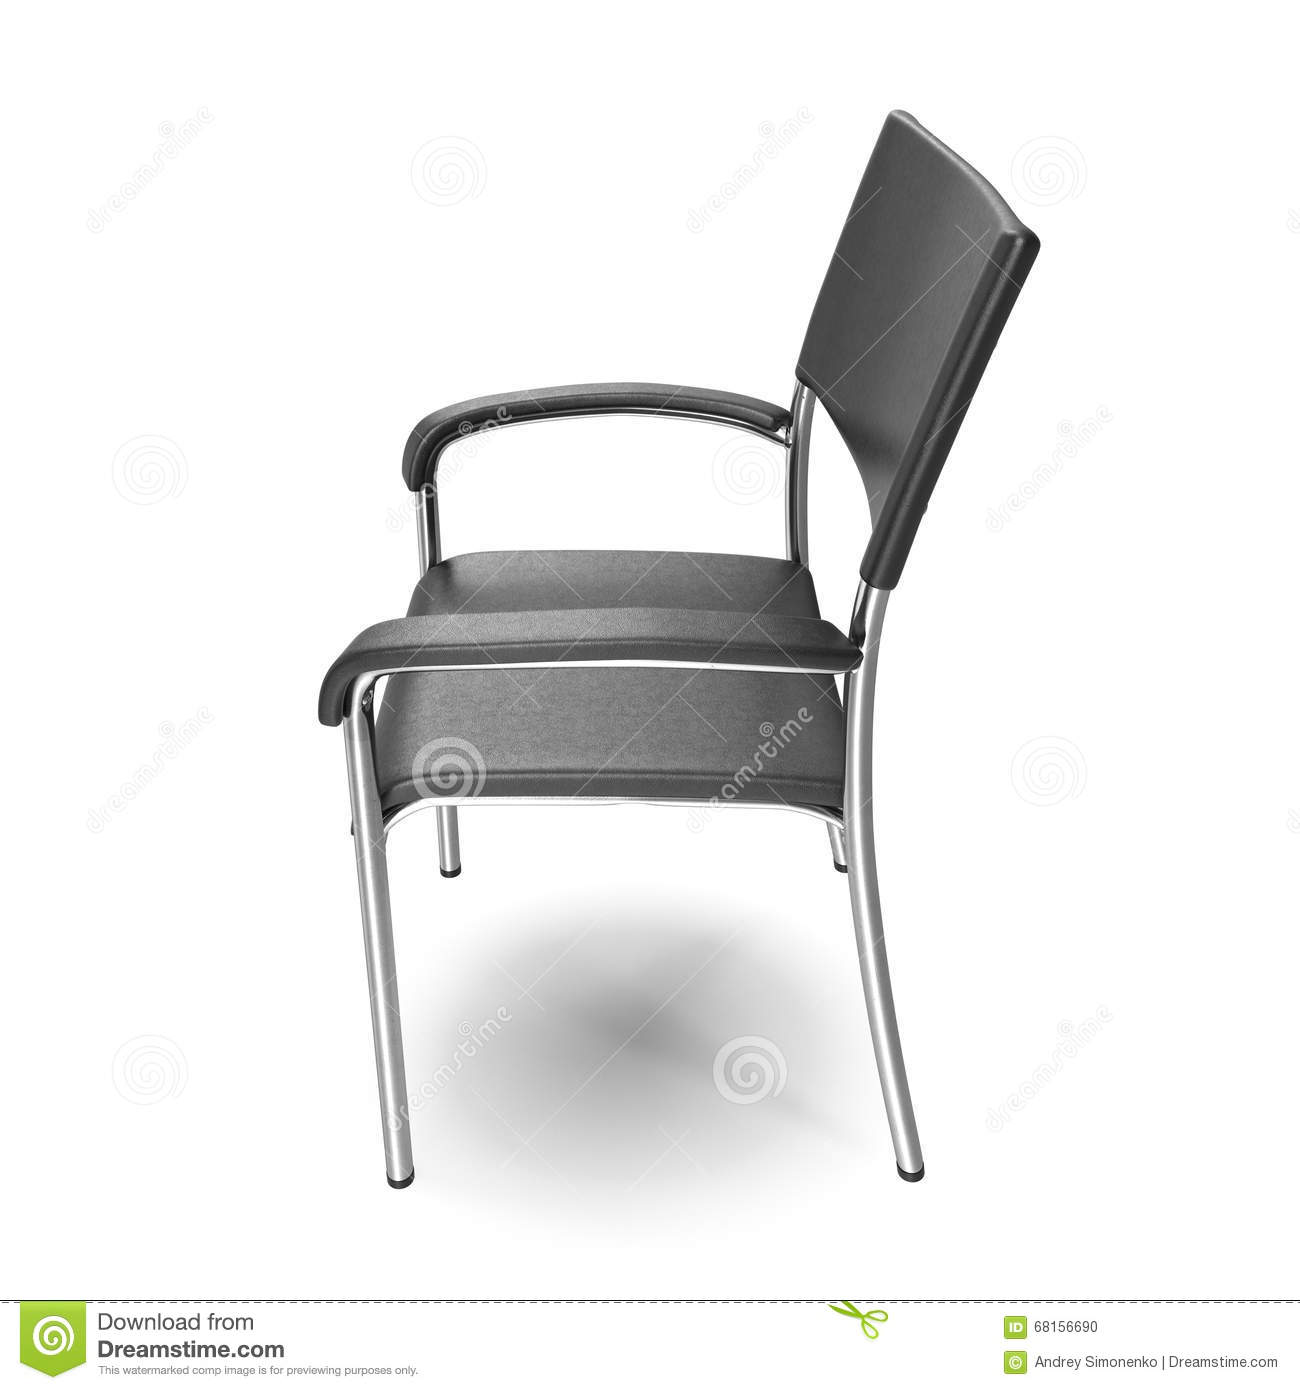 metal leg chair black patio chairs office with steel legs on white background